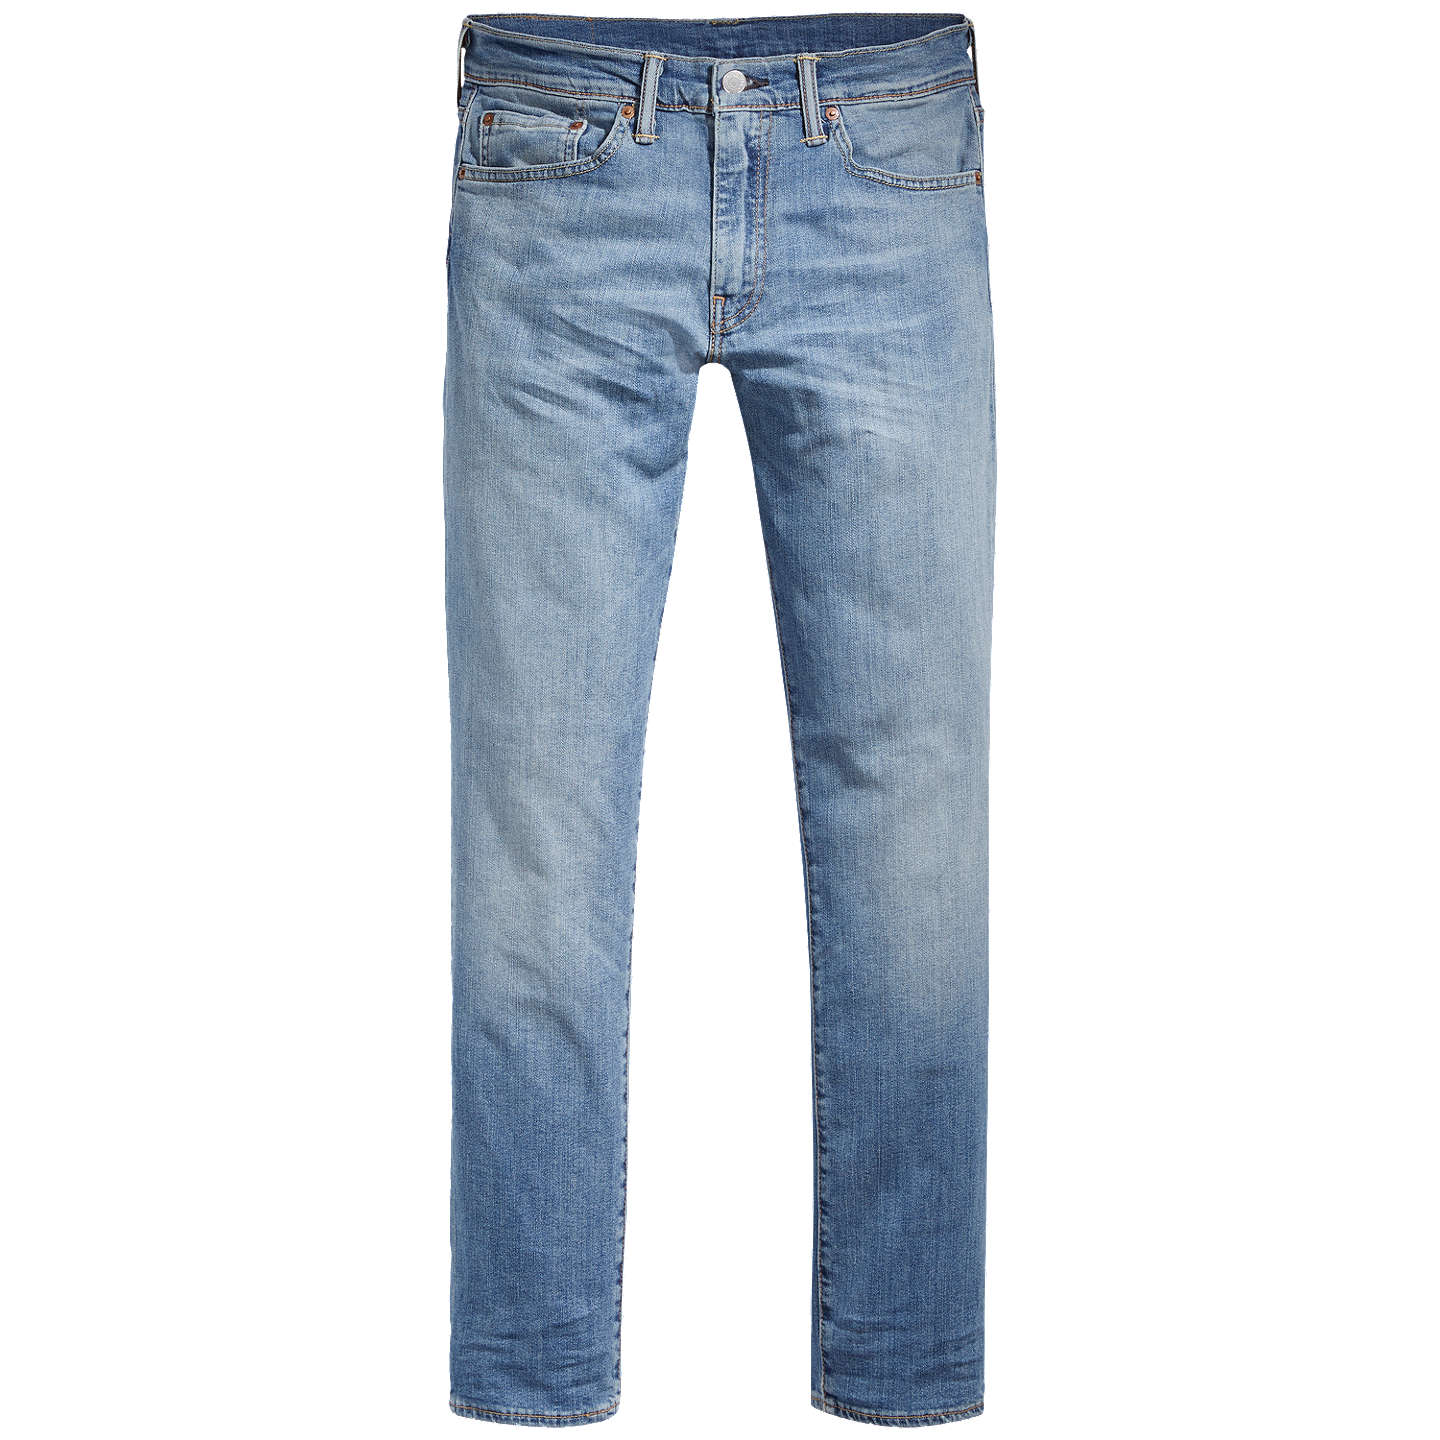 Cedar Brown Branded Jeans | Rica Lewis Special Jeans For Men | Waist31 -  Clothing,